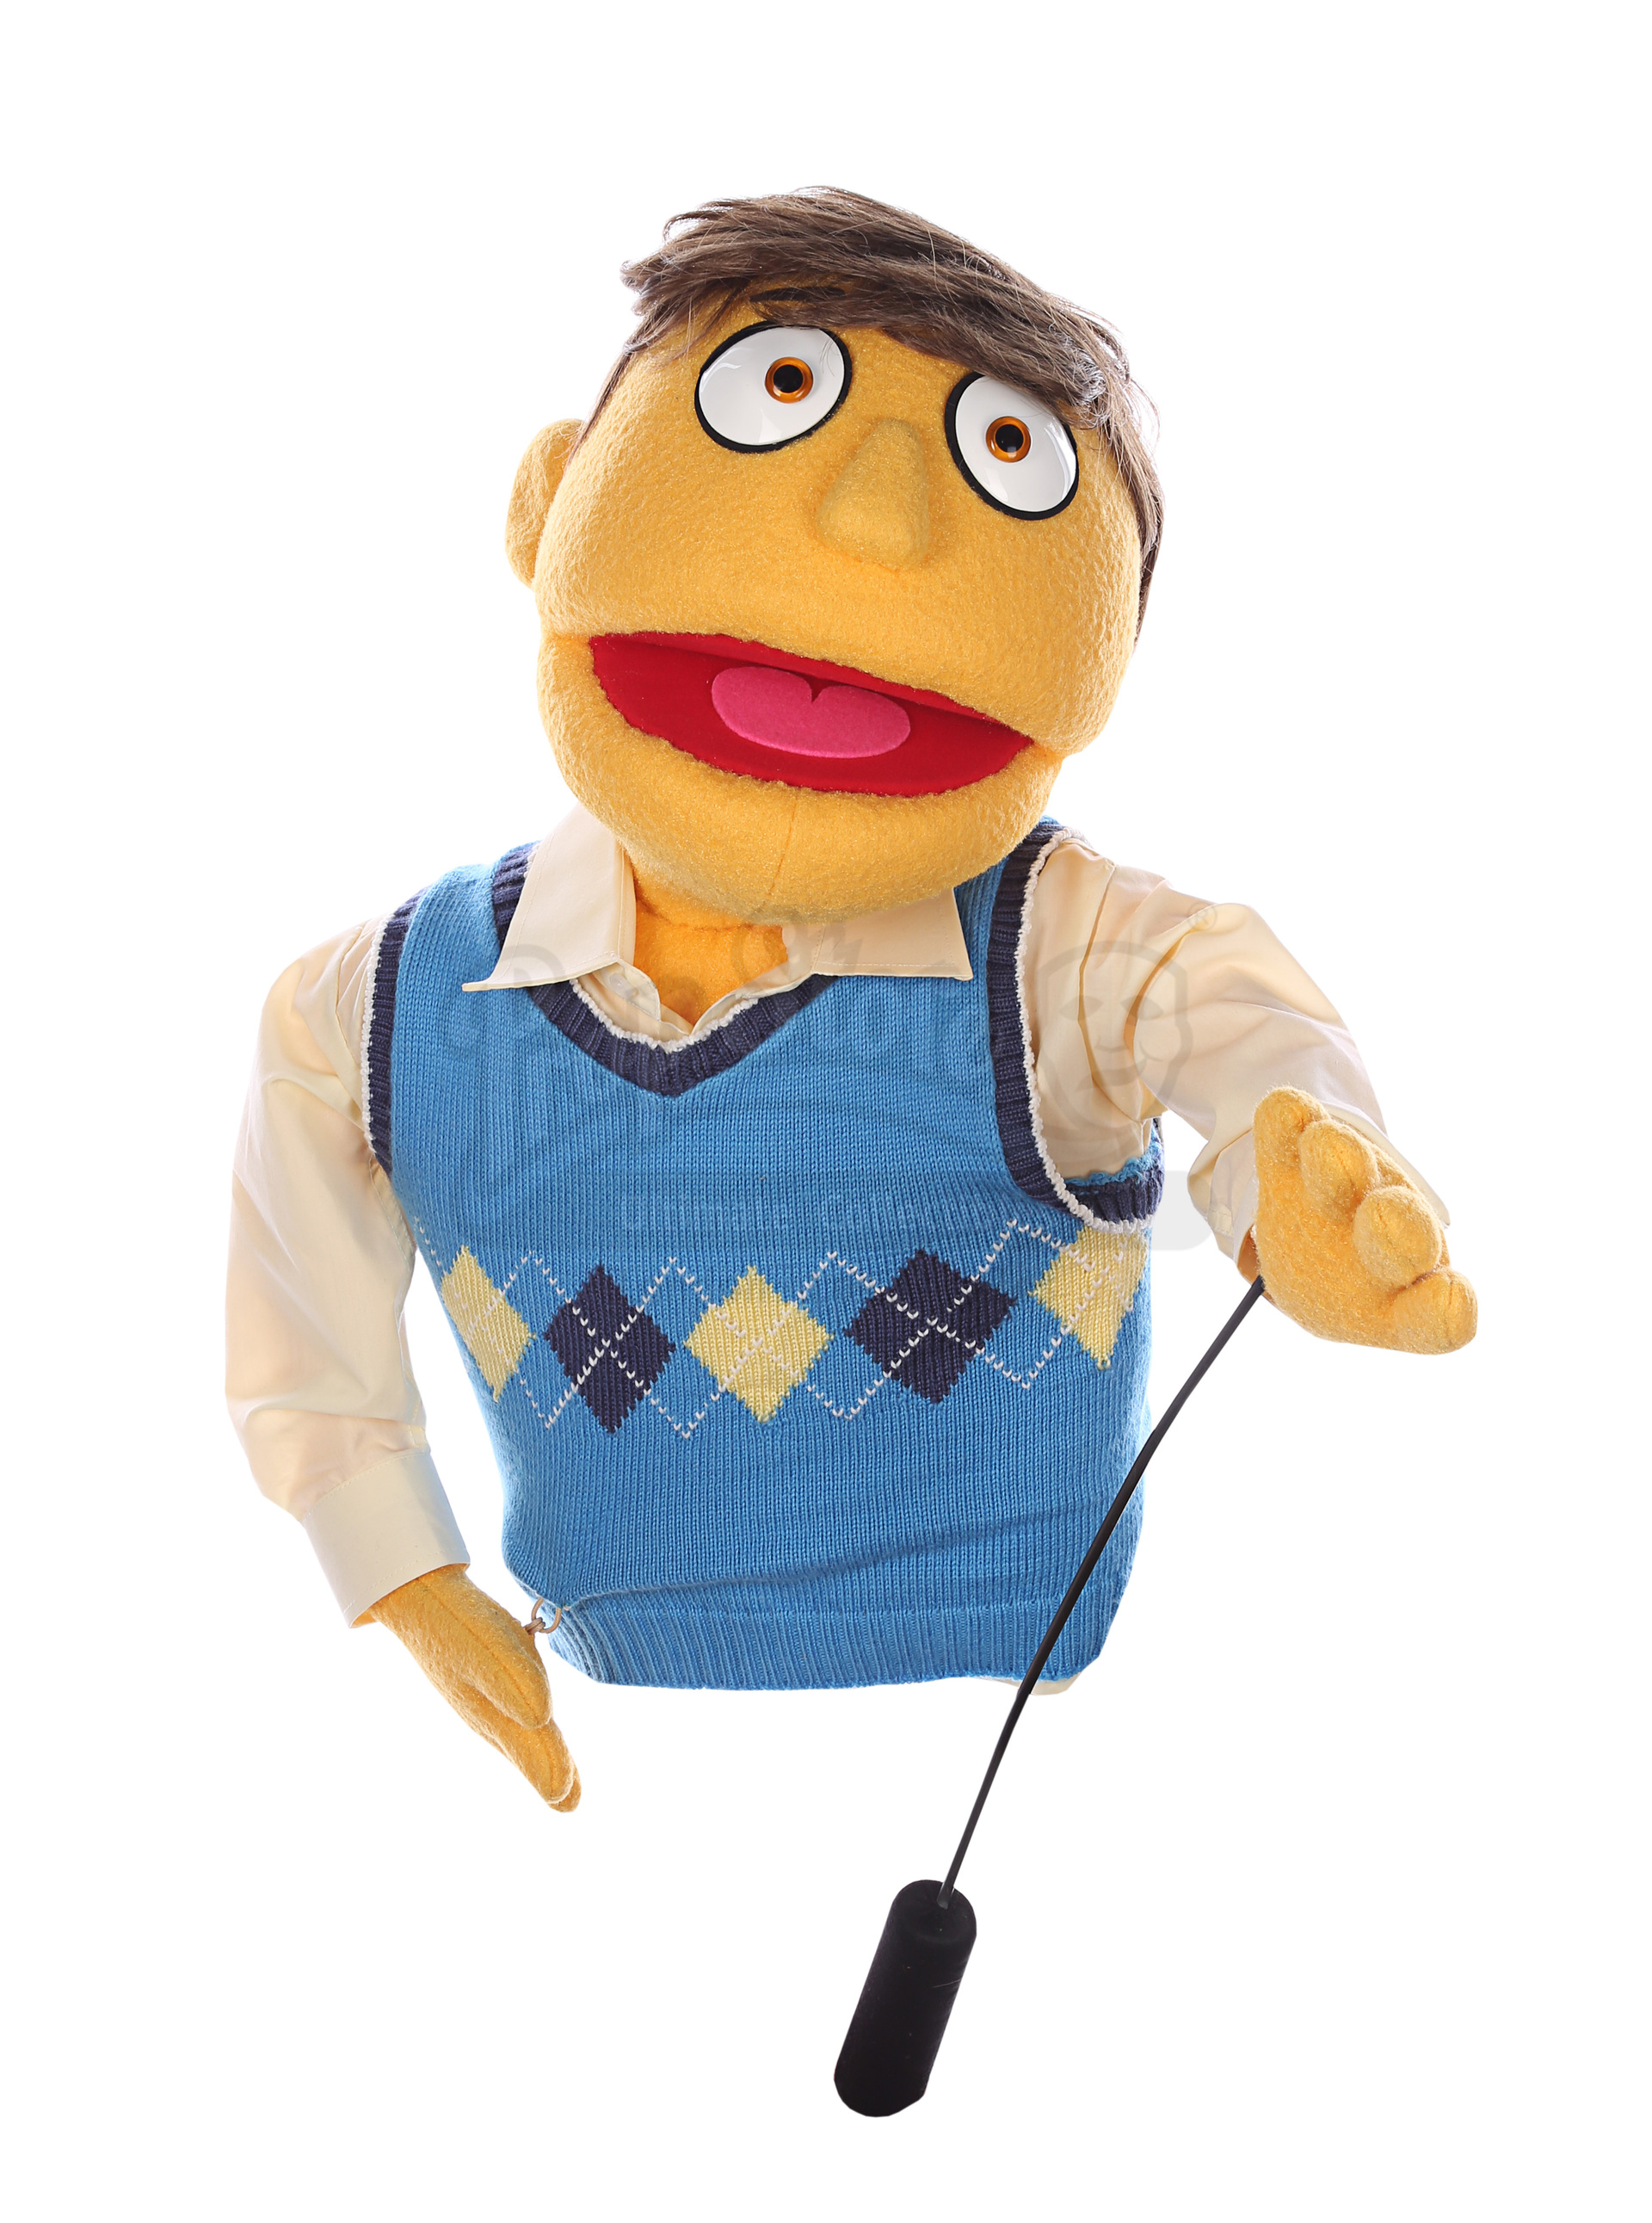 AVENUE Q (STAGE SHOW) - Cameo Puppet Collection: Mrs T, Ricky and Newcomer - Image 6 of 13